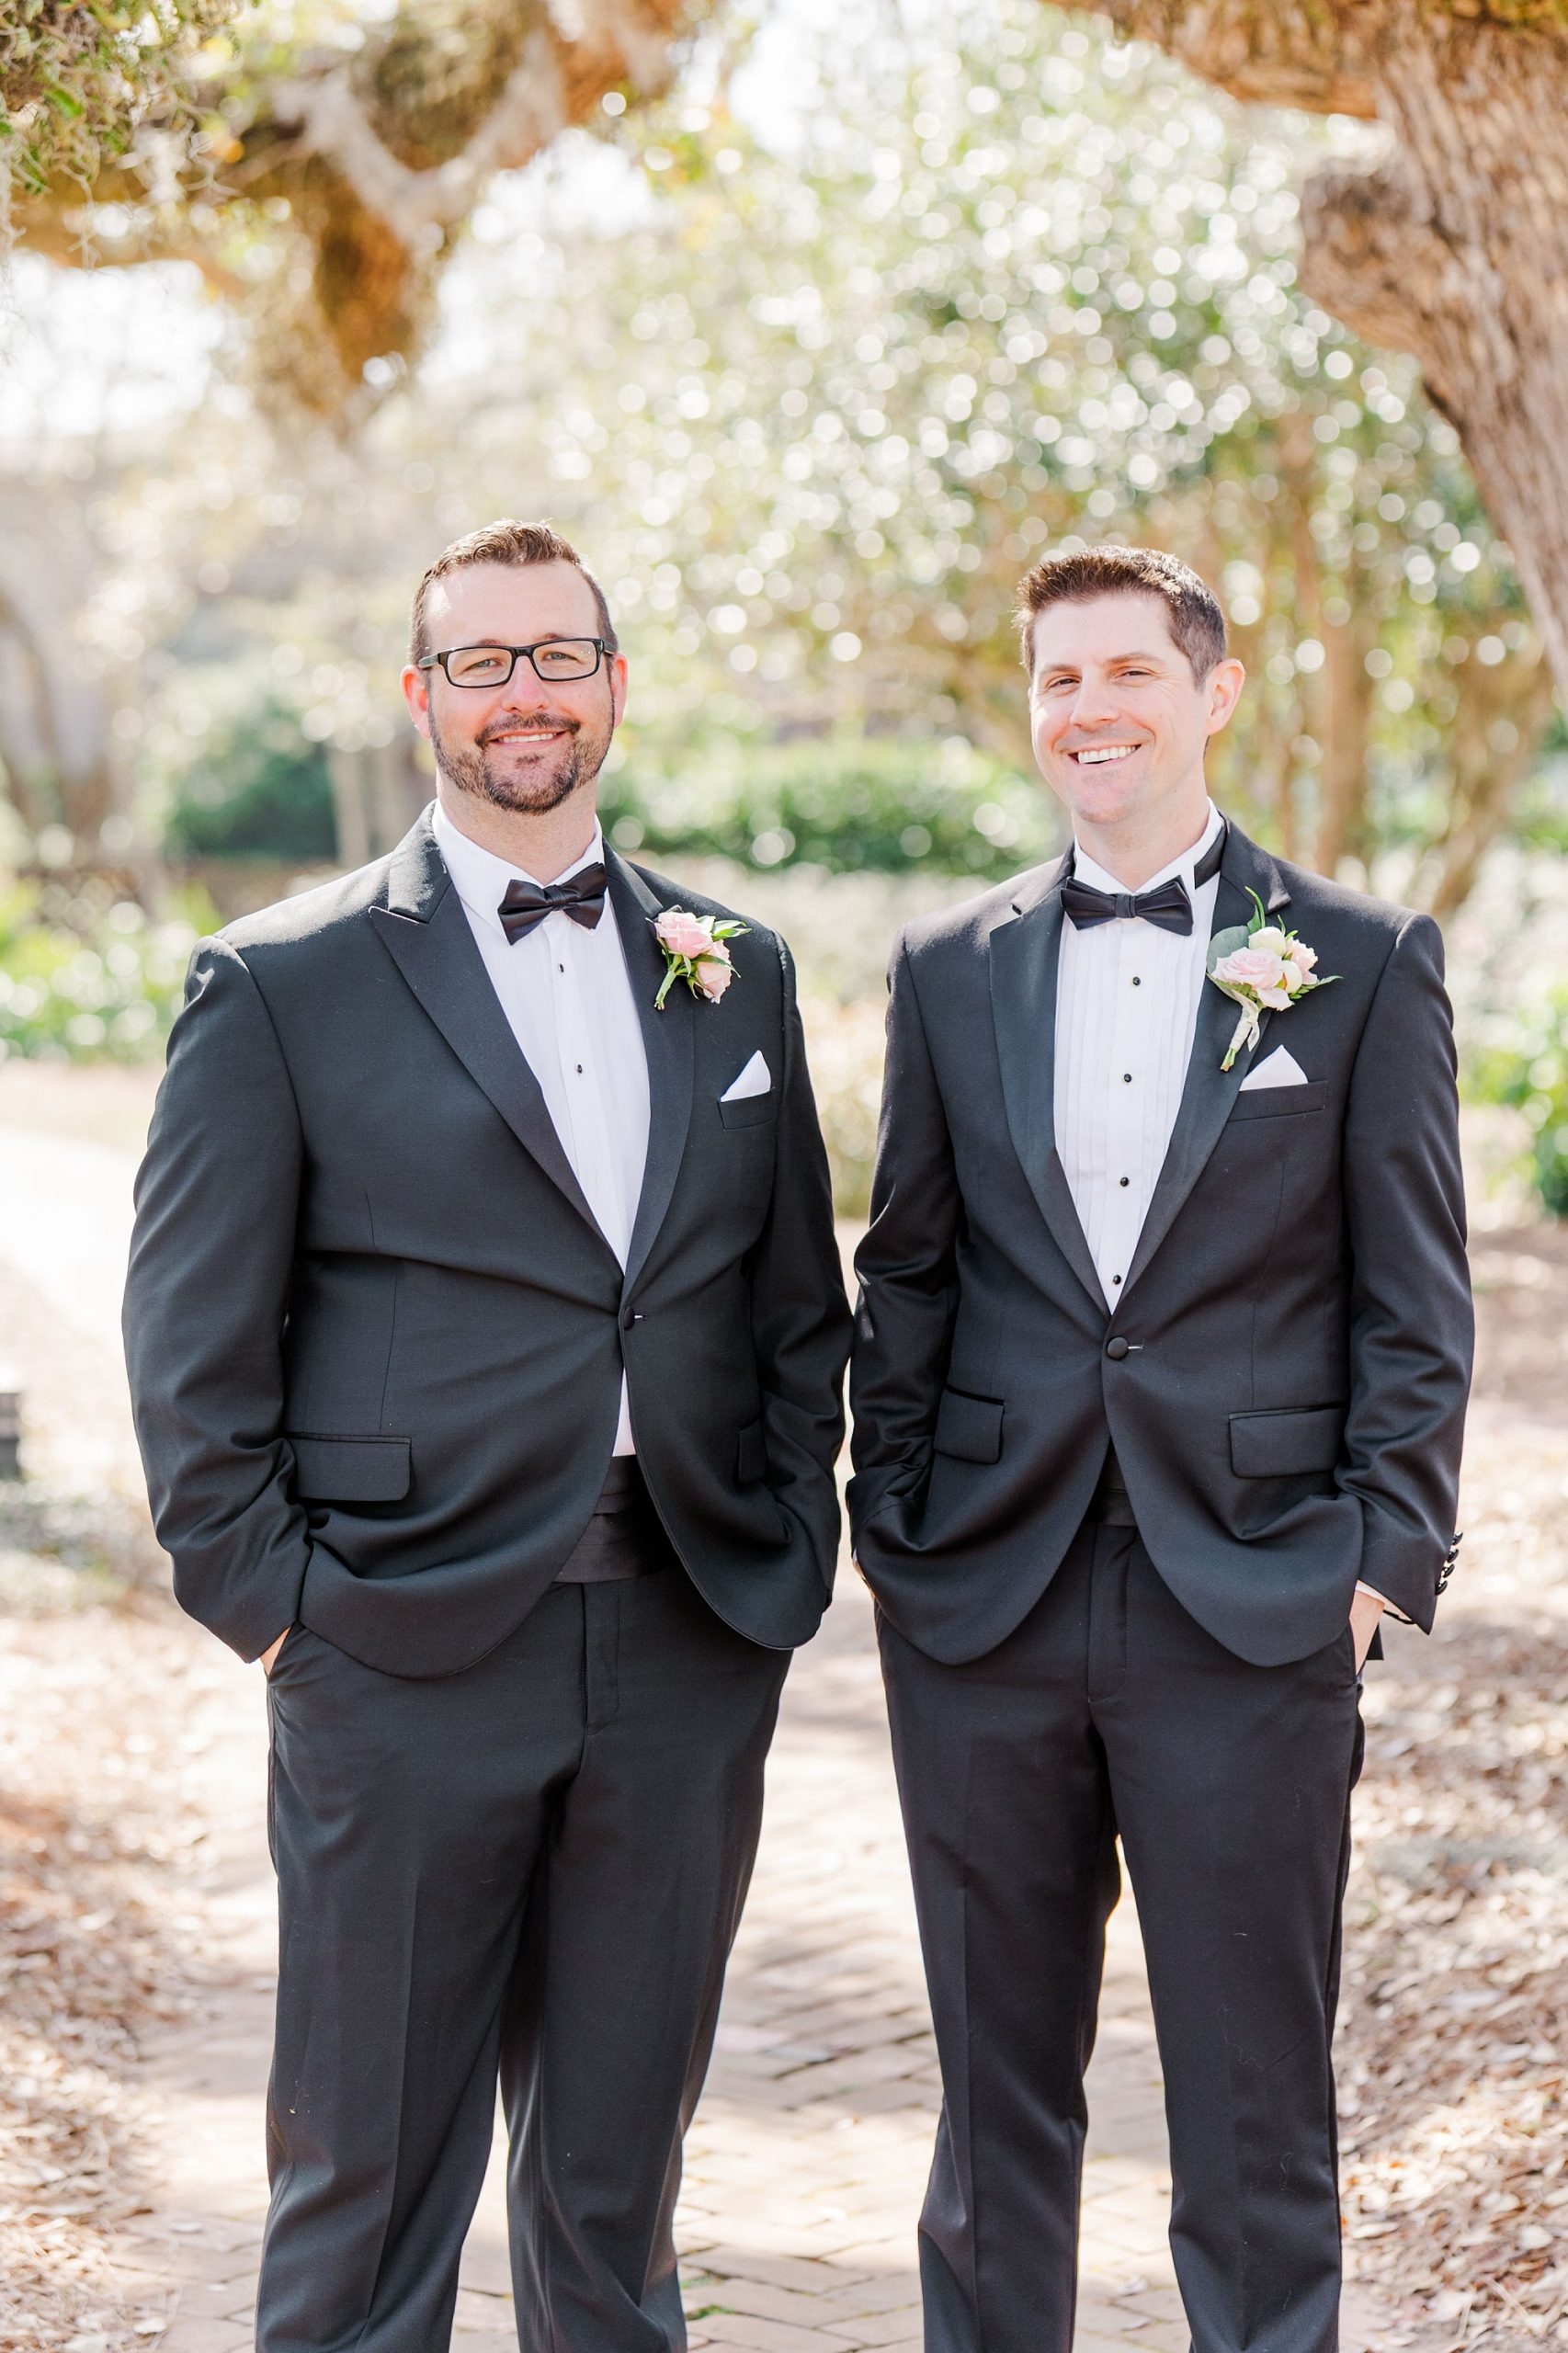 groom poses with groomsman during AL wedding day